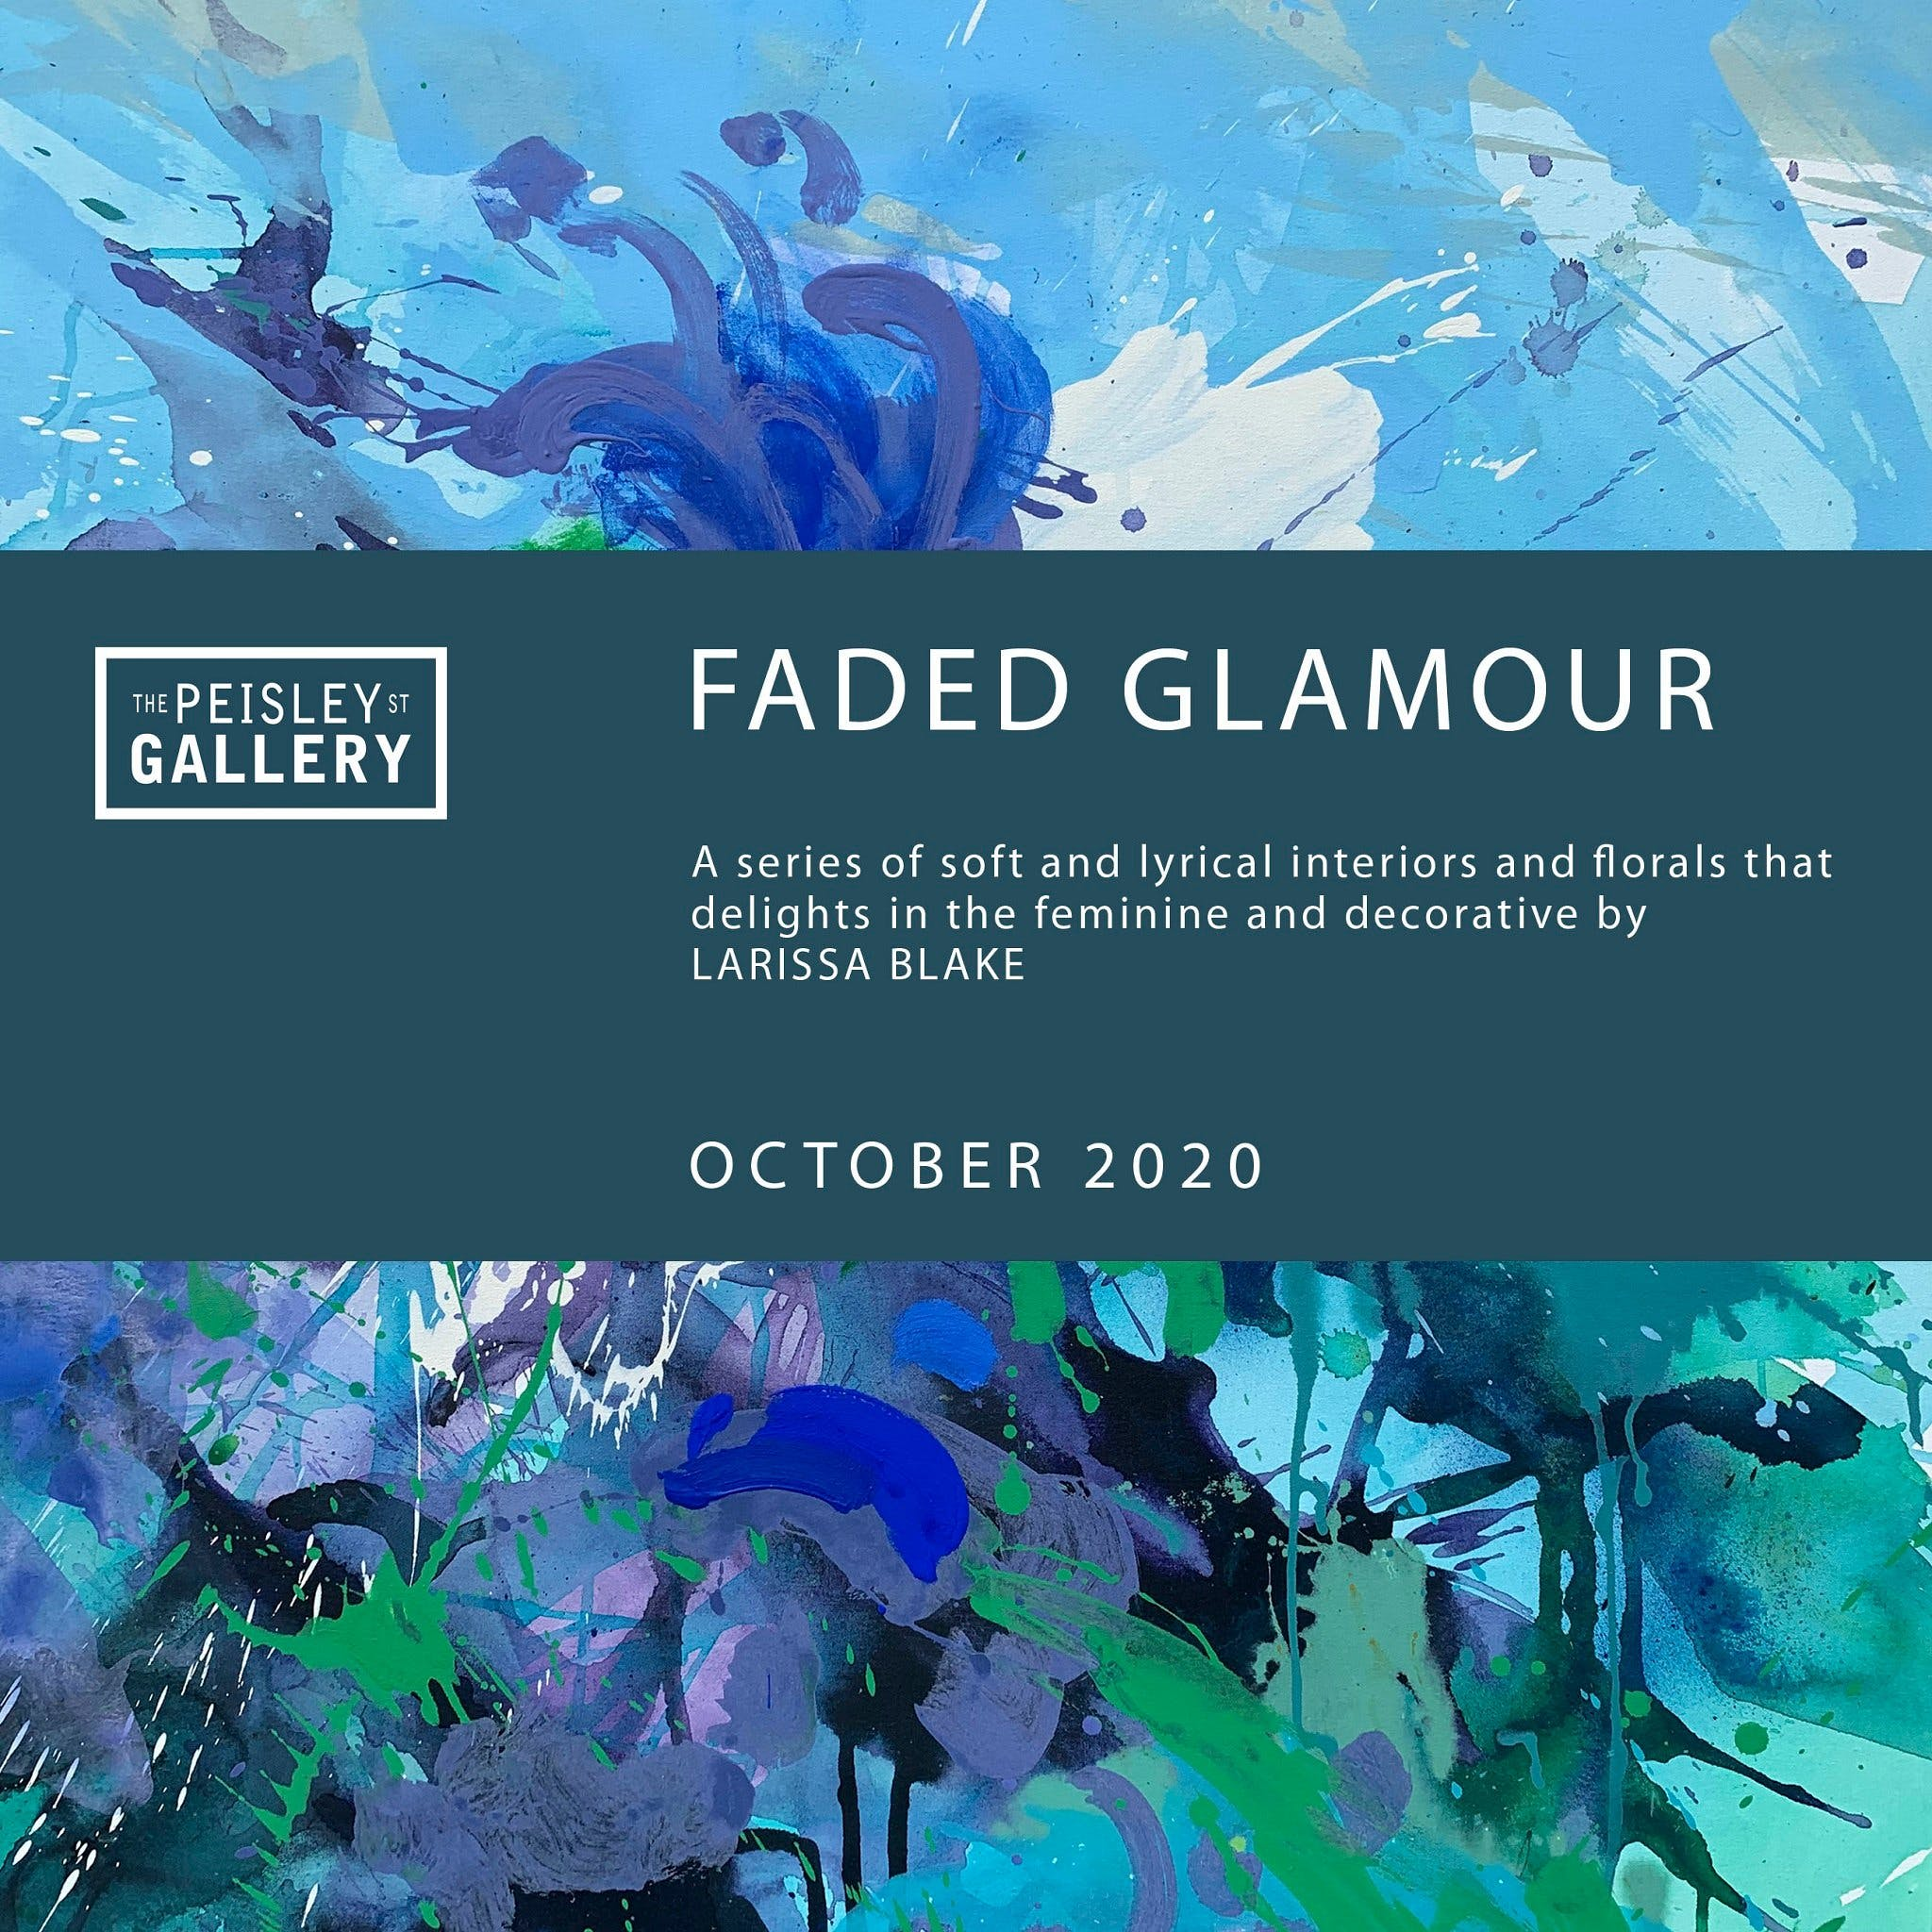 Faded Glamour - paintings by Larissa Blake - Accommodation in Brisbane